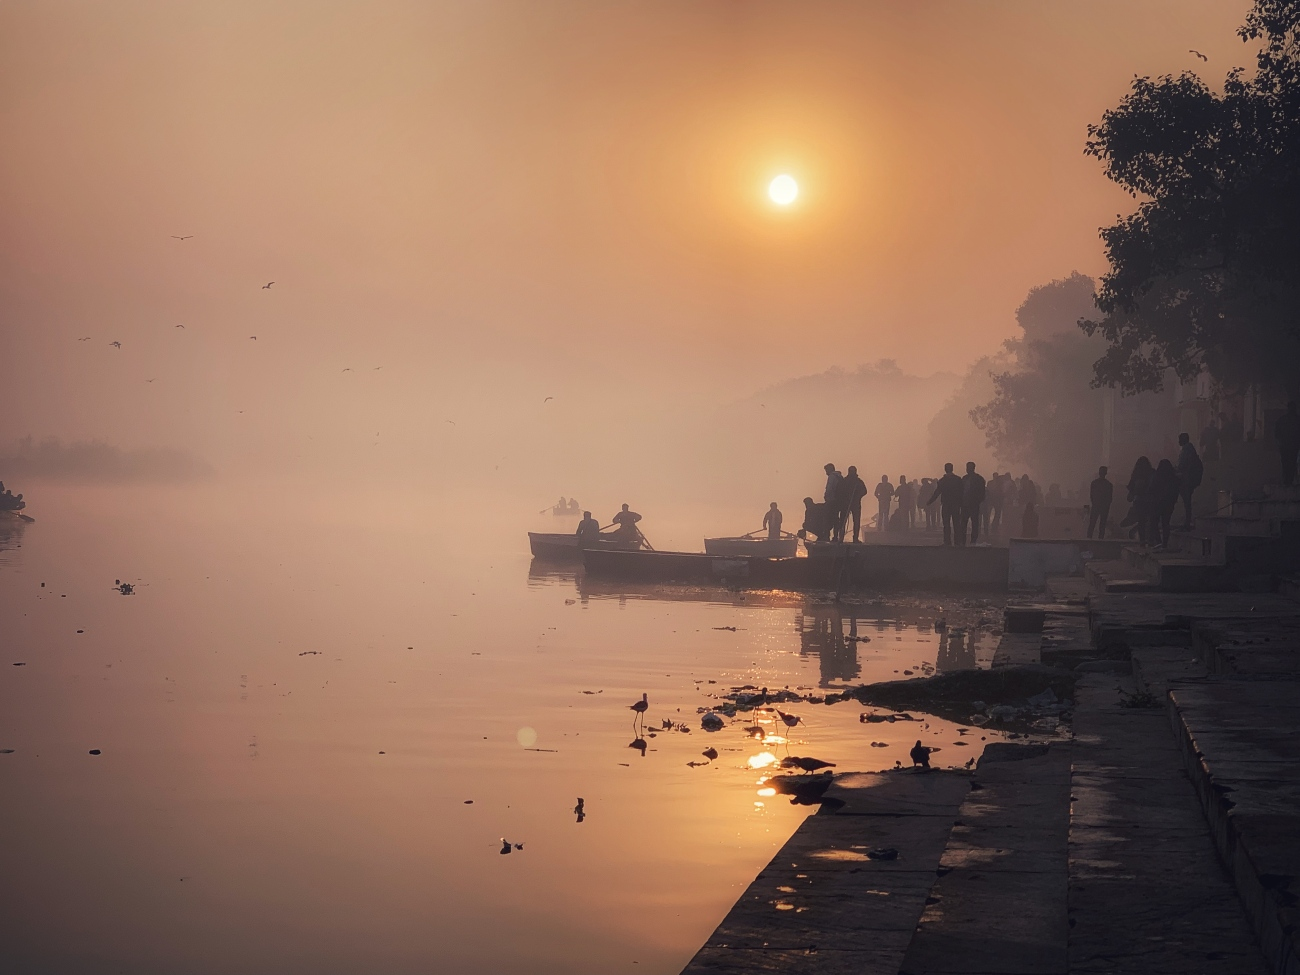 Misty Mornings at the Yamuna Ghaat